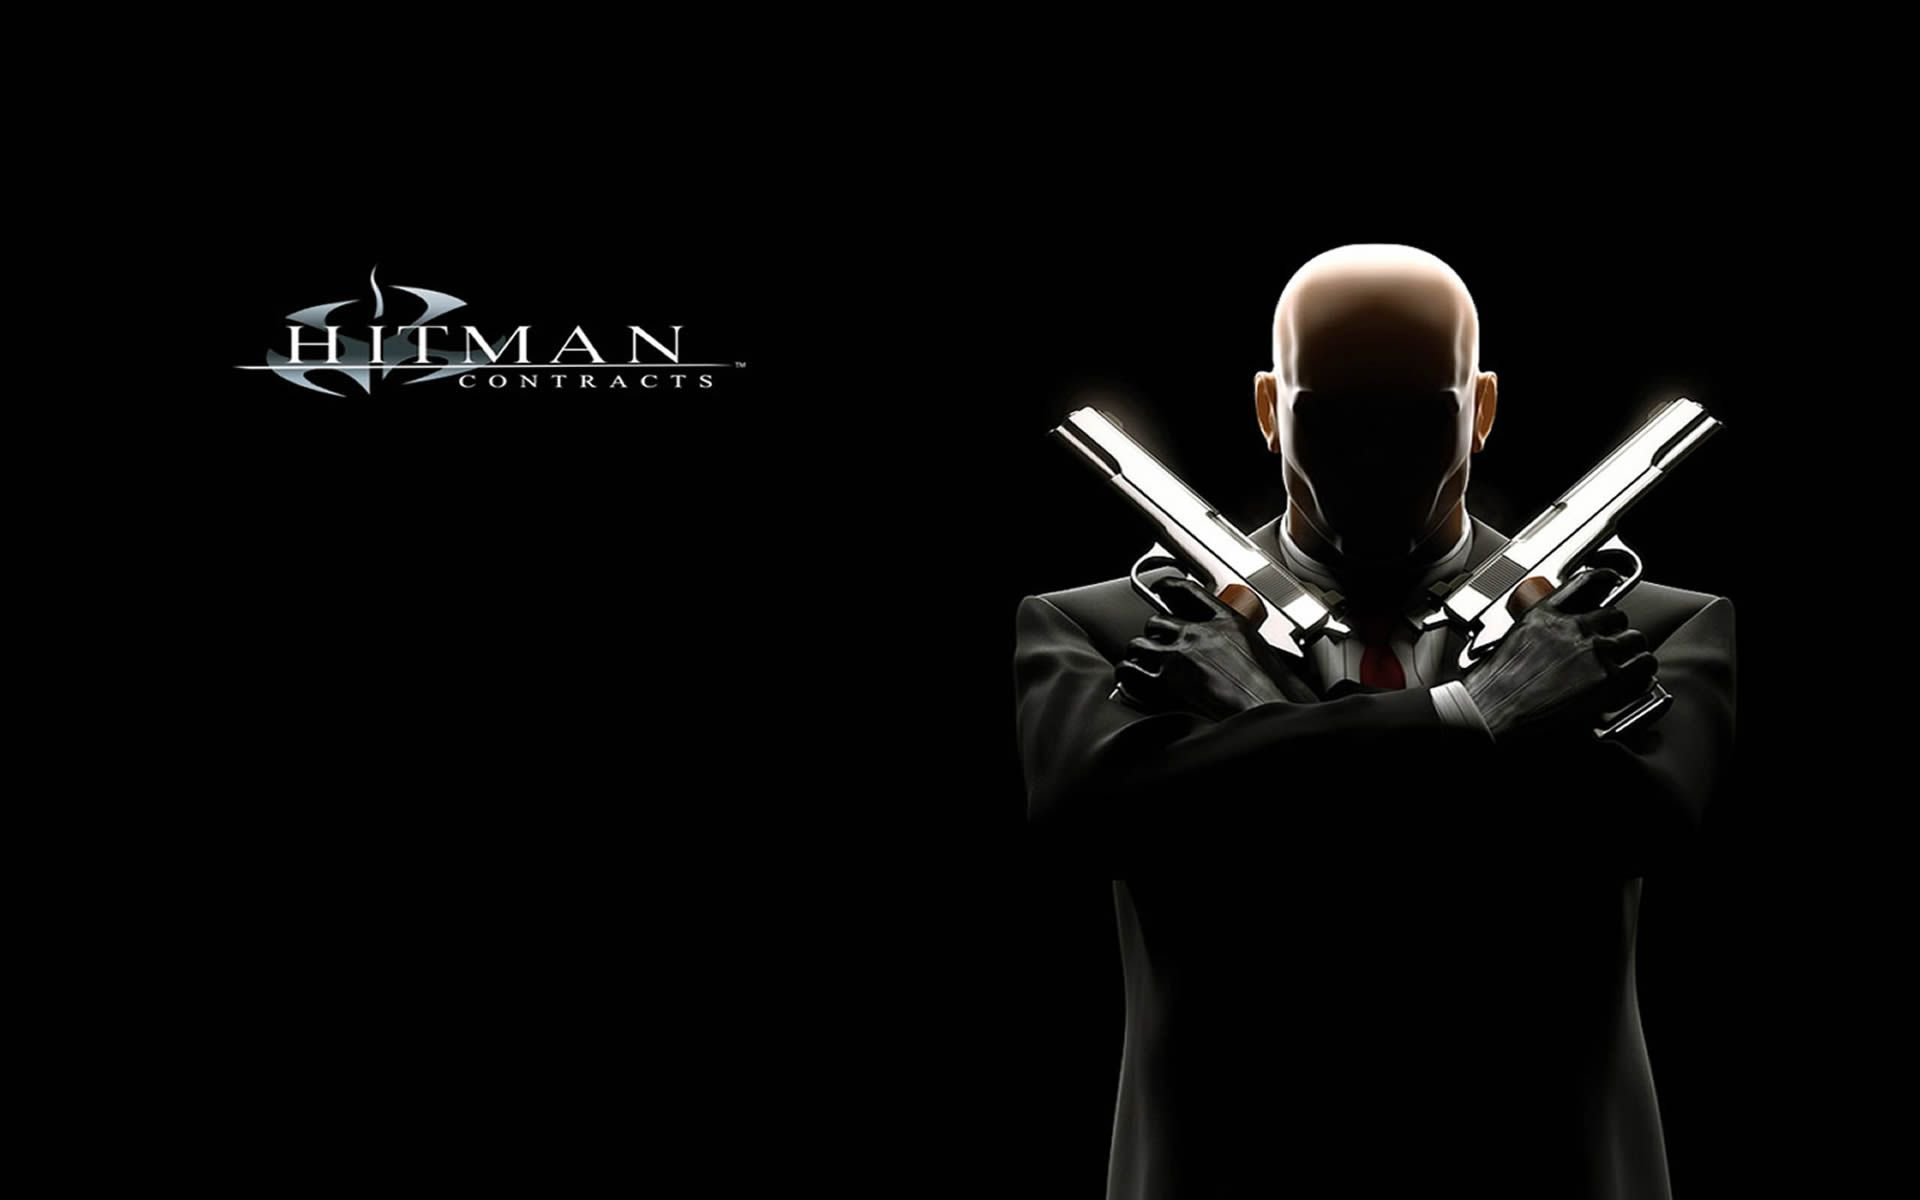 Free logo hitman hd wallpapers mobile hd wallpapers pinterest free logo hitman hd wallpapers mobile buycottarizona Gallery